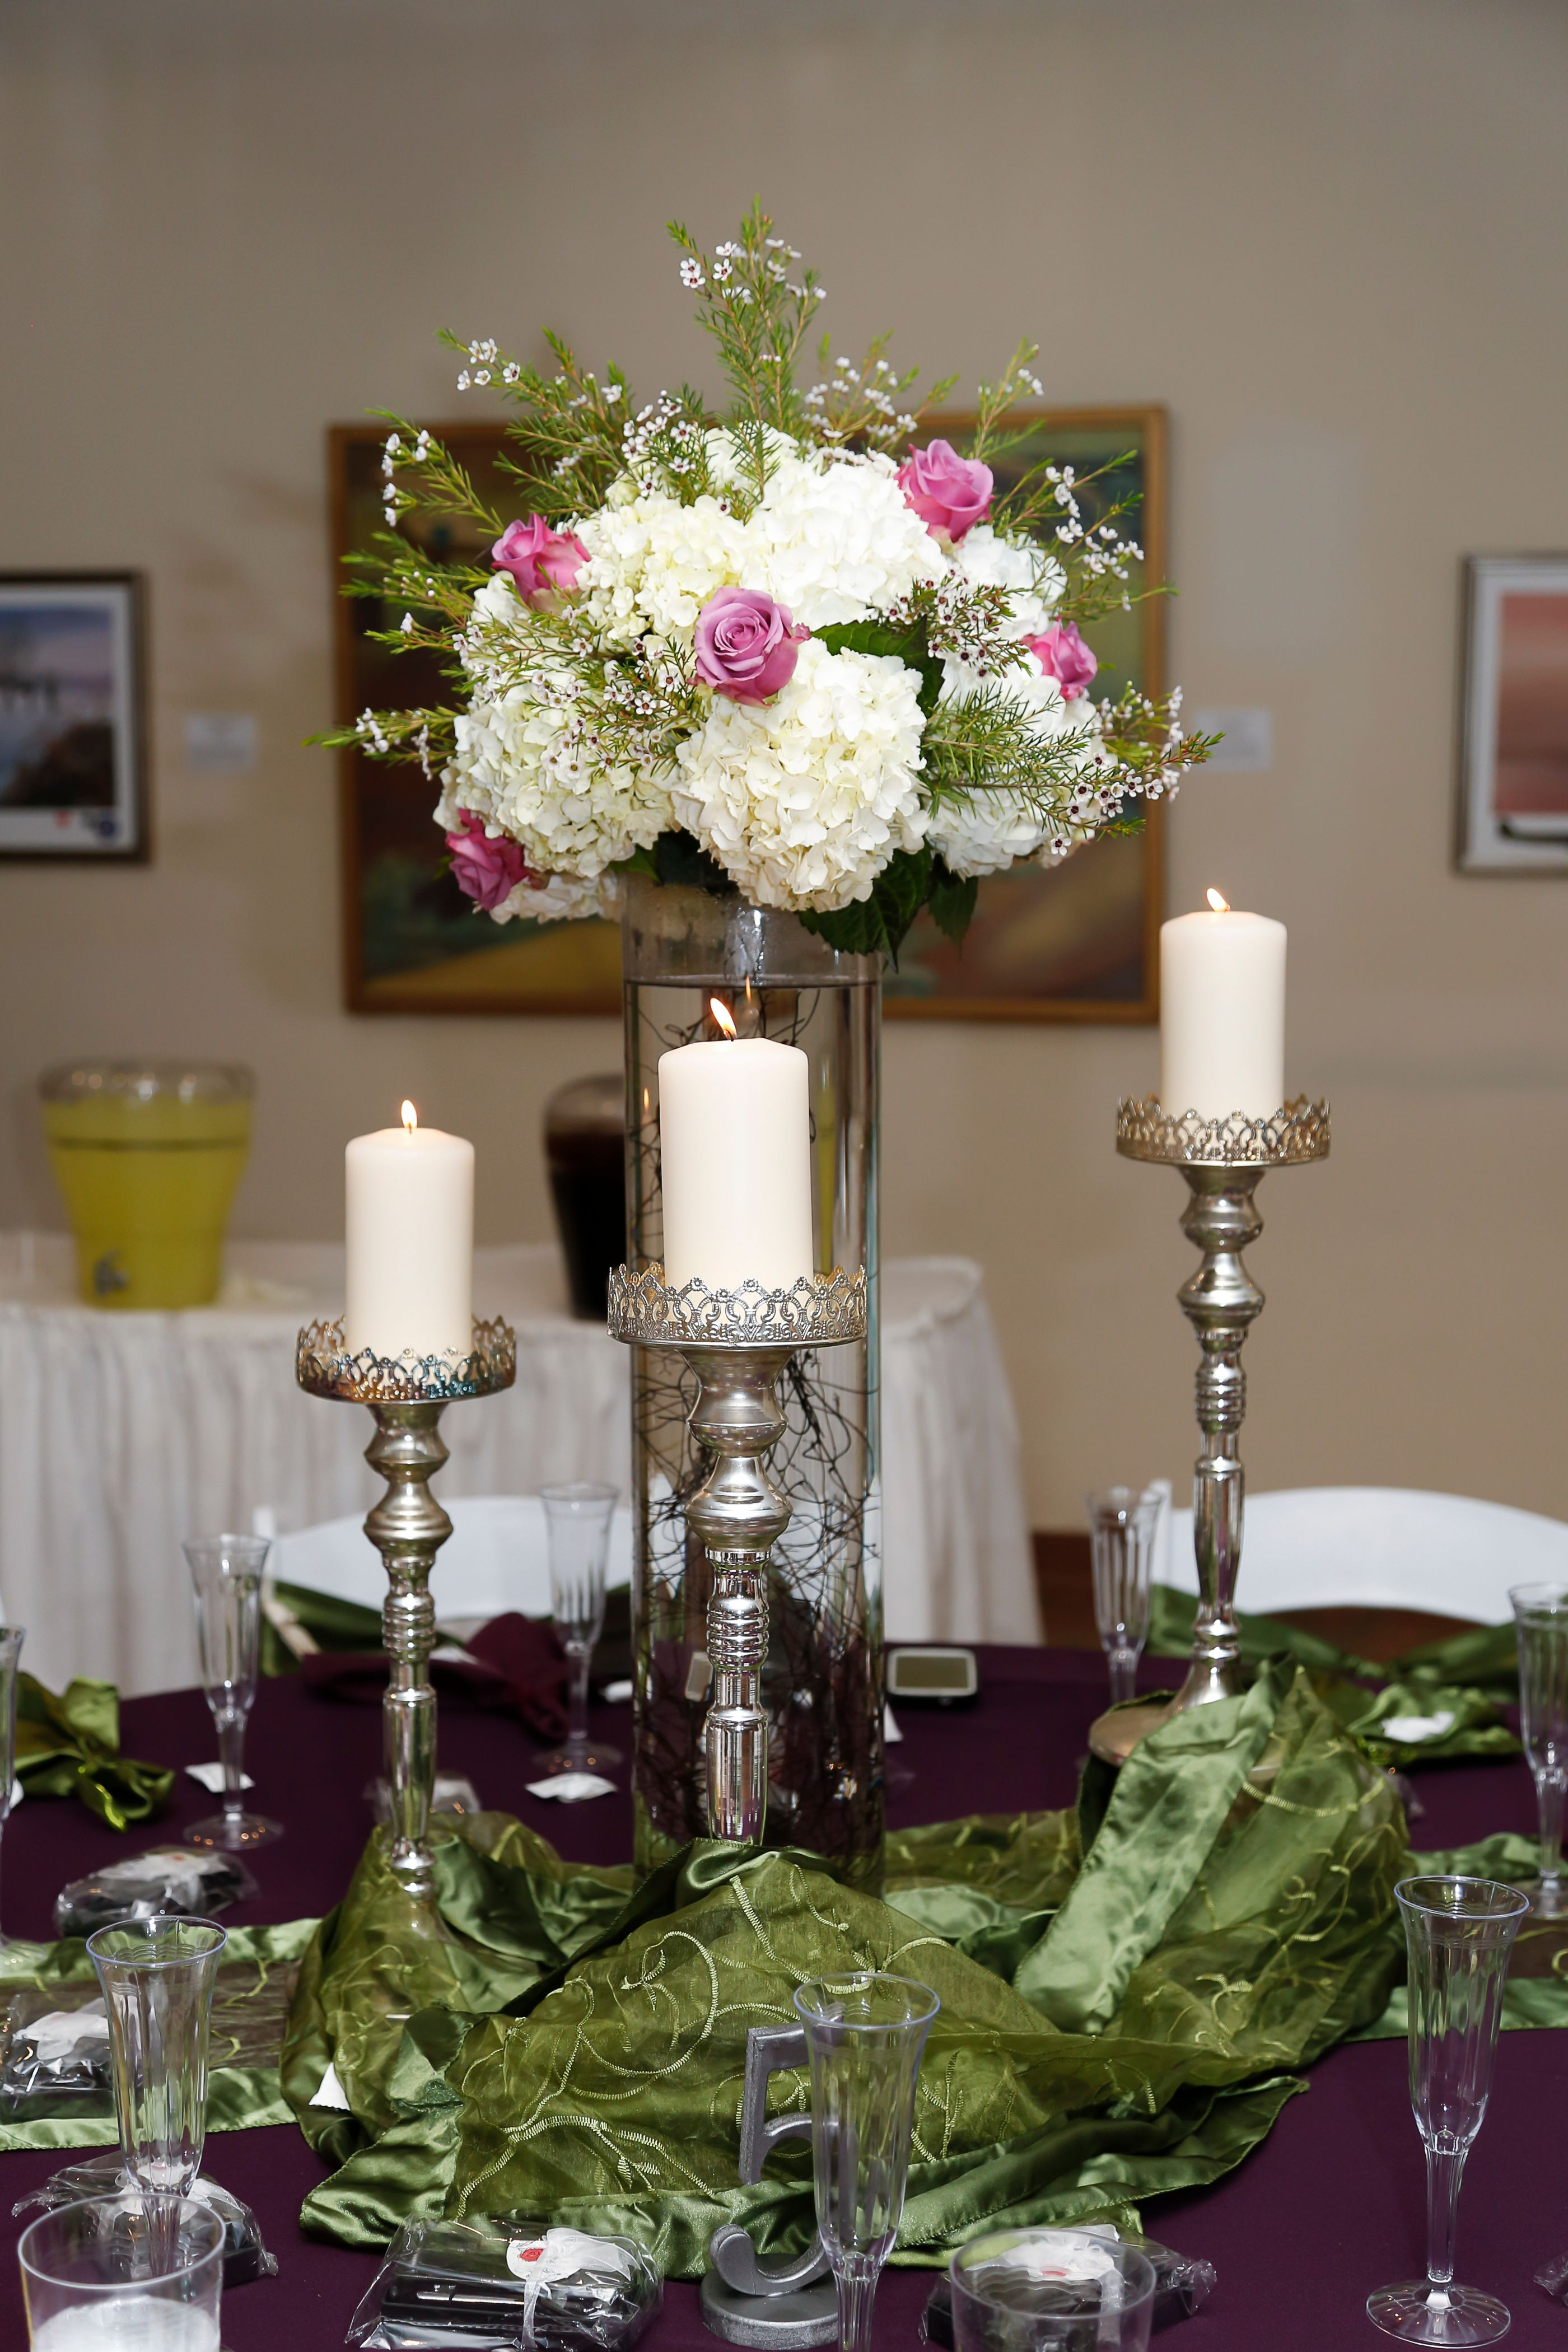 Wedding centerpieces Wedding planning guide, Wedding